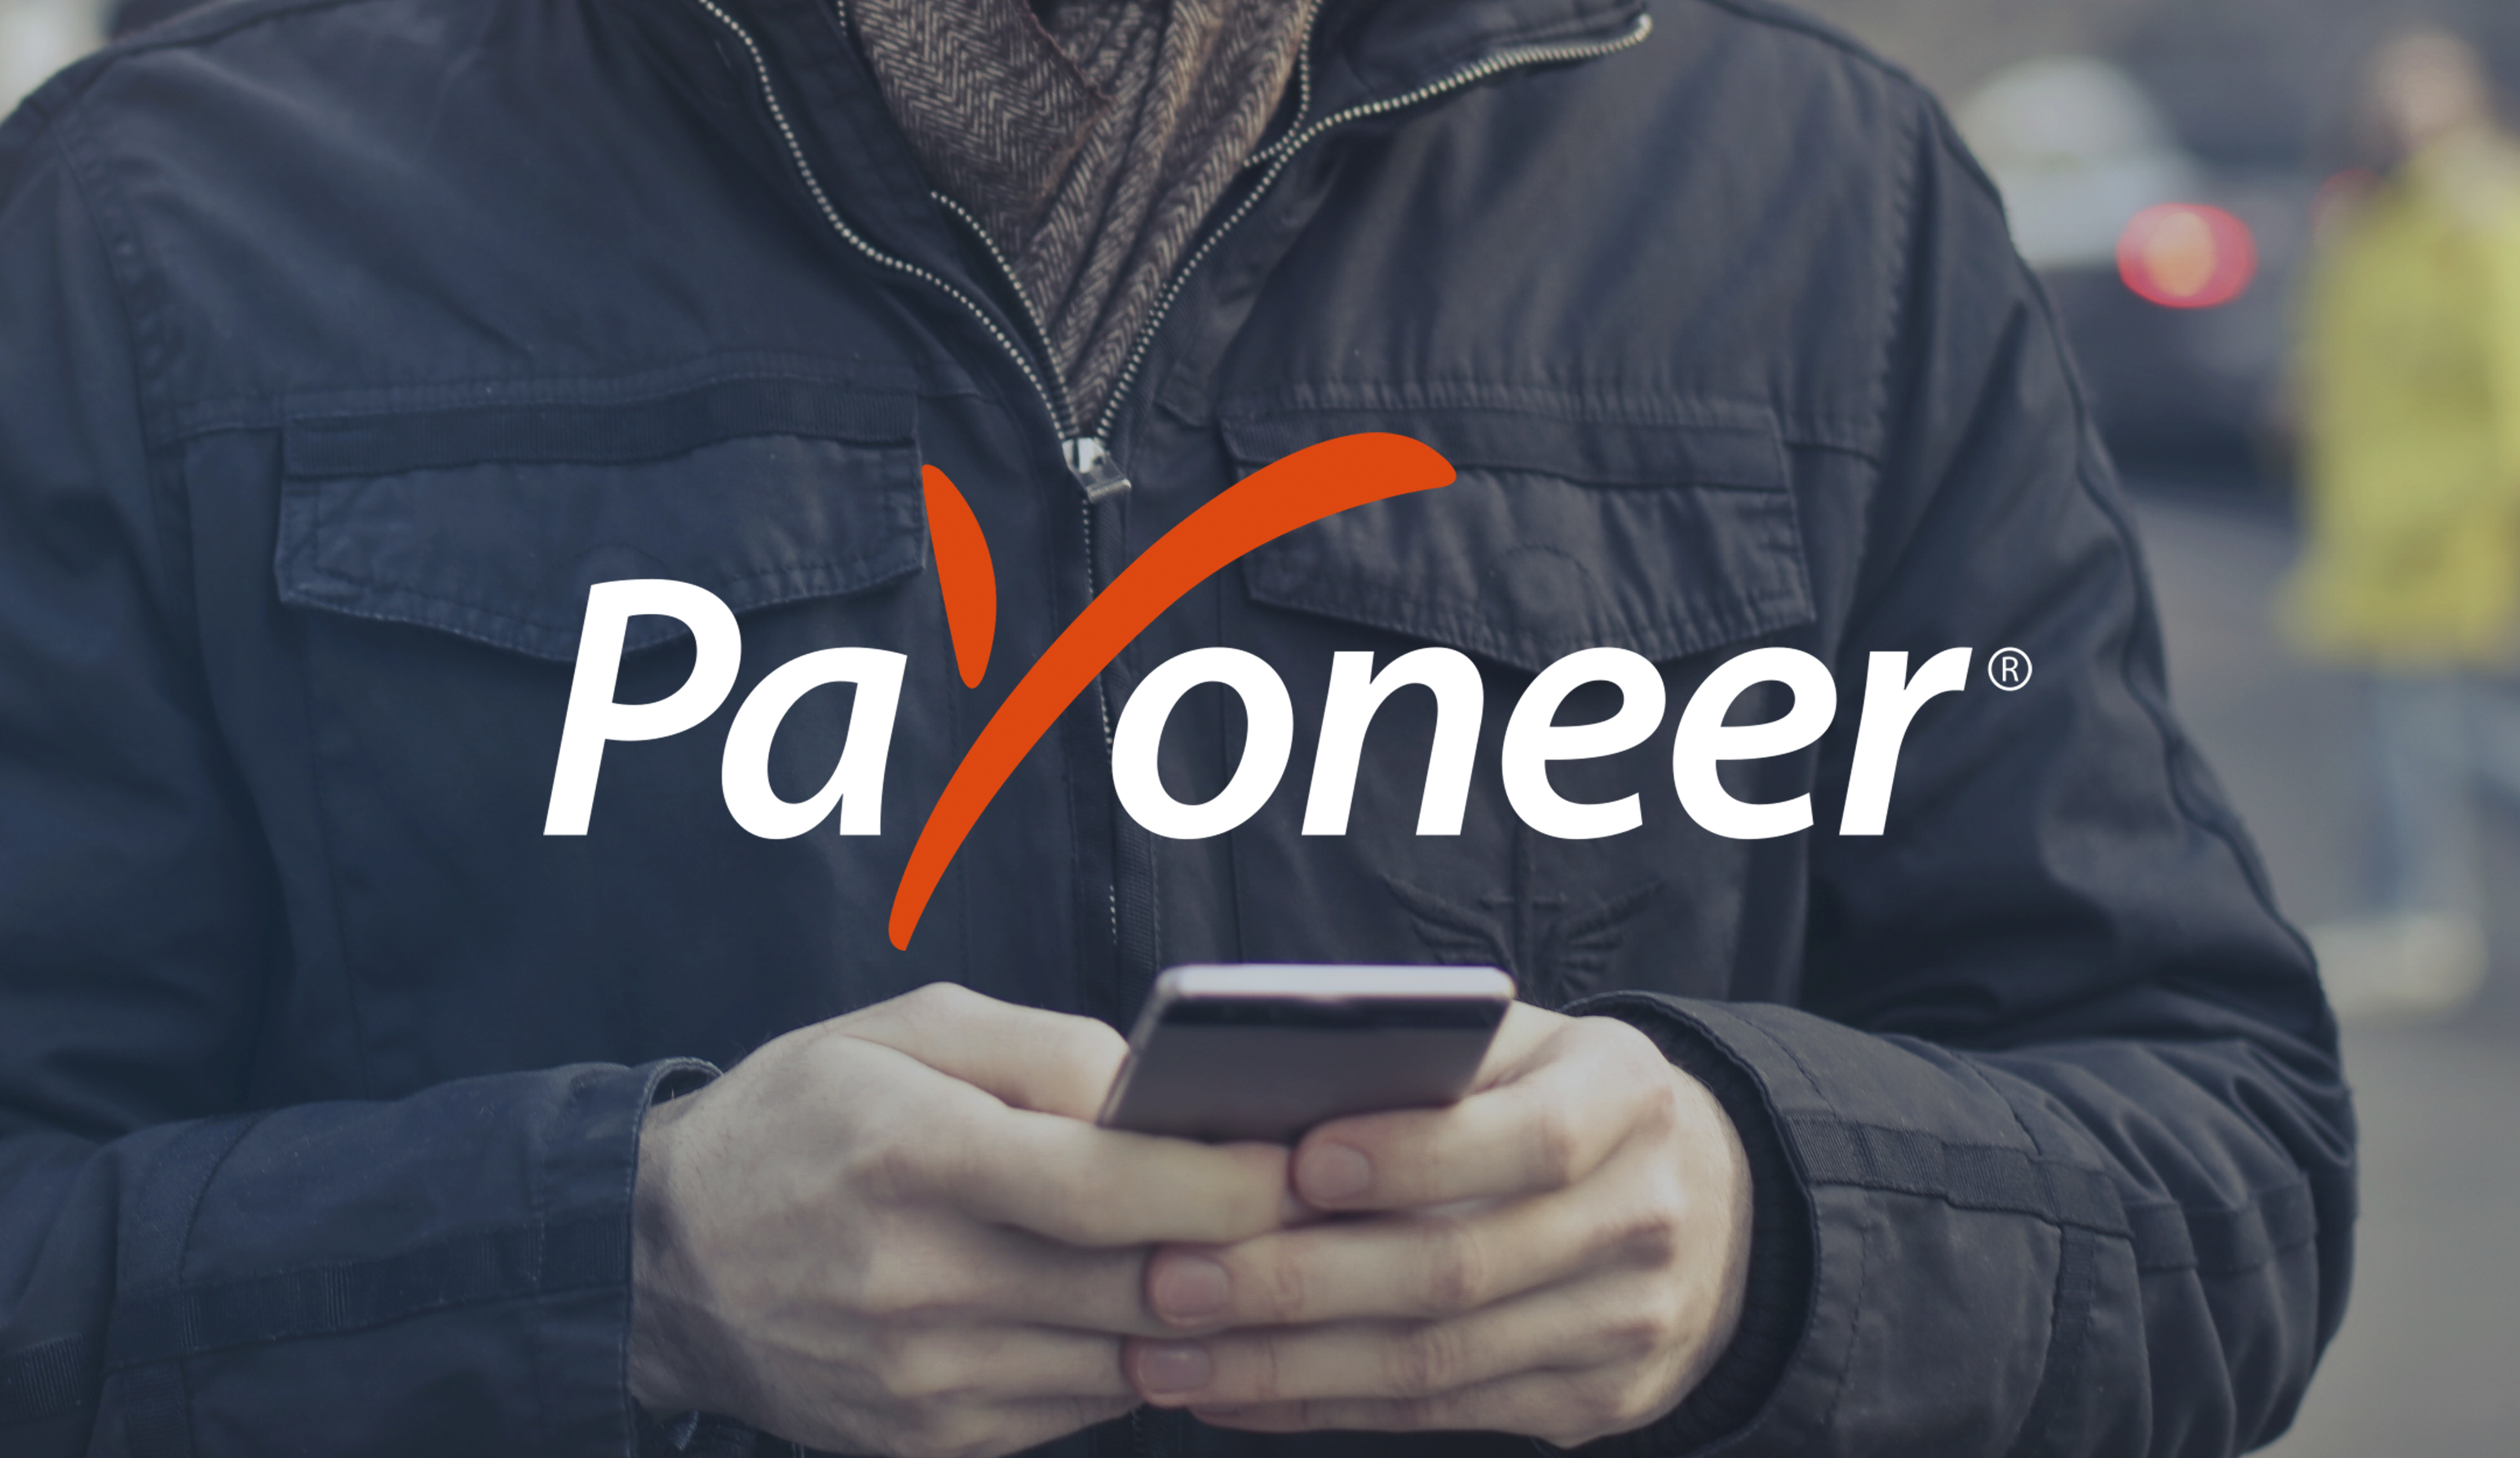 Payoneer Payments: How to Easily Sign-up and Get Approved